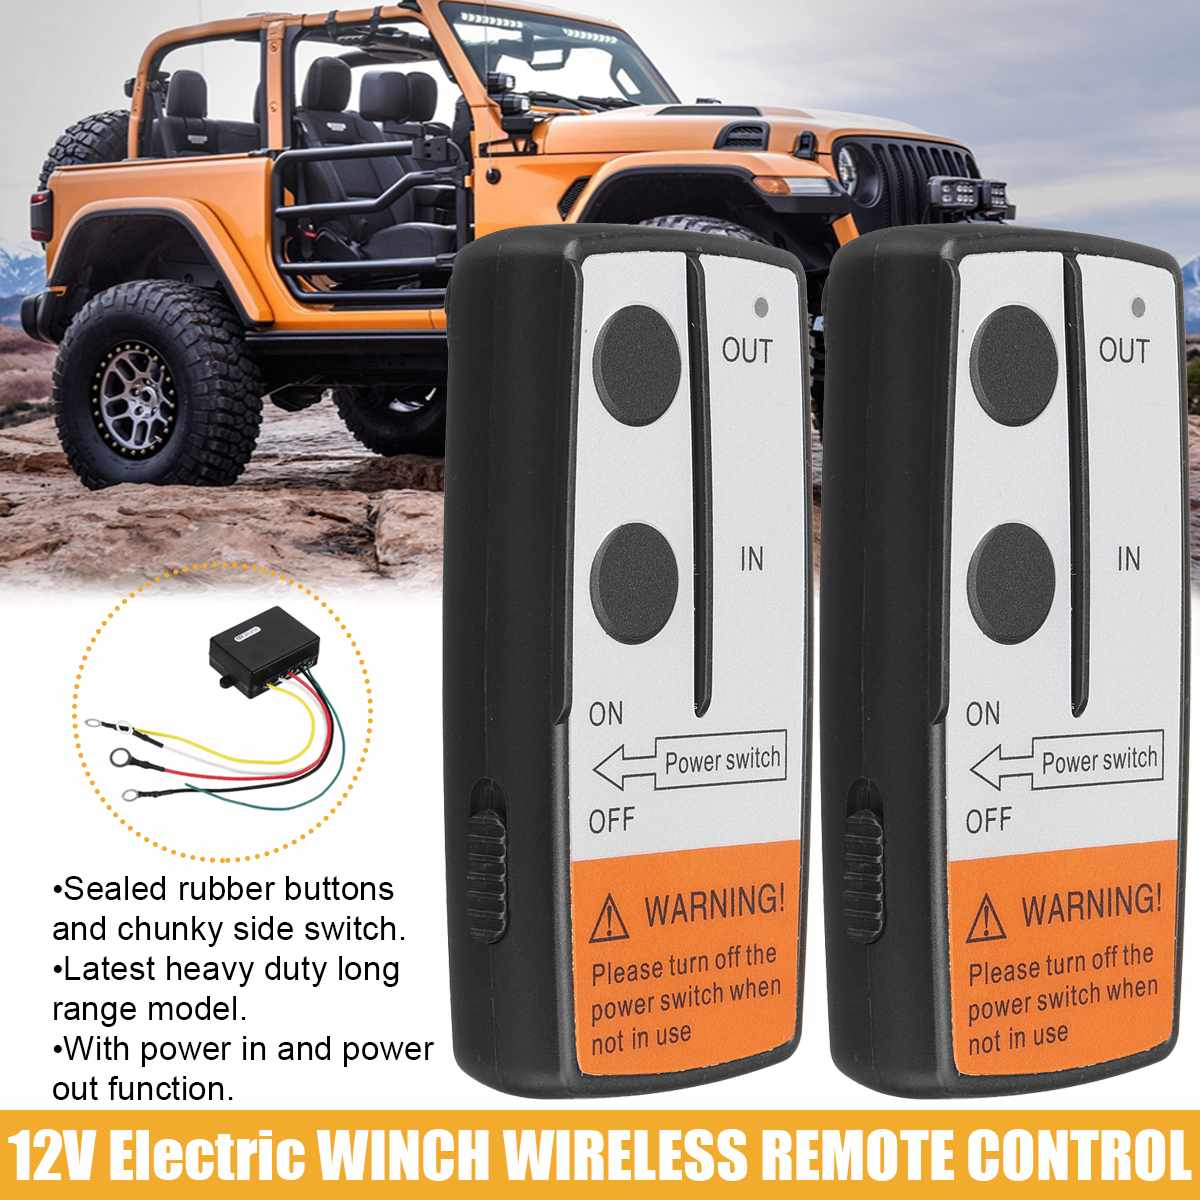 Car Wireless Winch Electric Remote Control Switch W/ Manual Transmitter Set for Jeep Truck ATV SUV Trailer Electric Winch Hoist